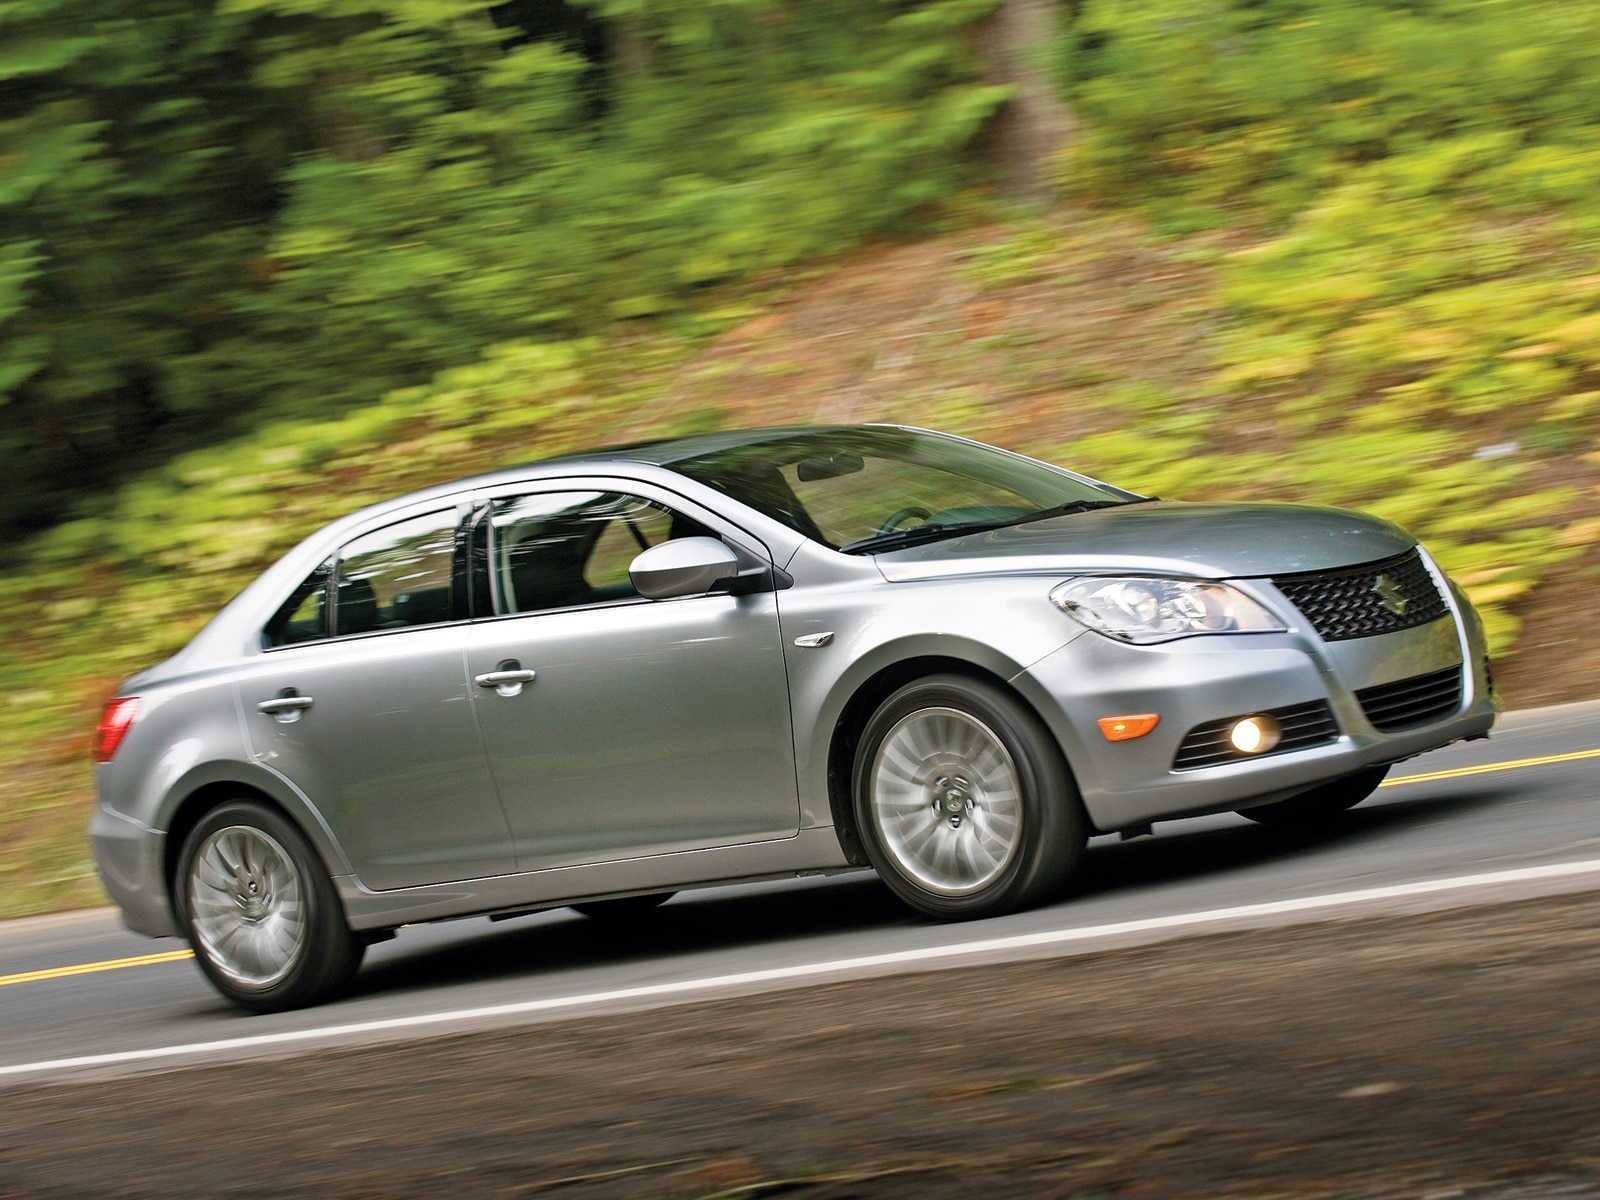 2010 suzuki kizashi suzuki midsize sedan review automobile magazine. Black Bedroom Furniture Sets. Home Design Ideas